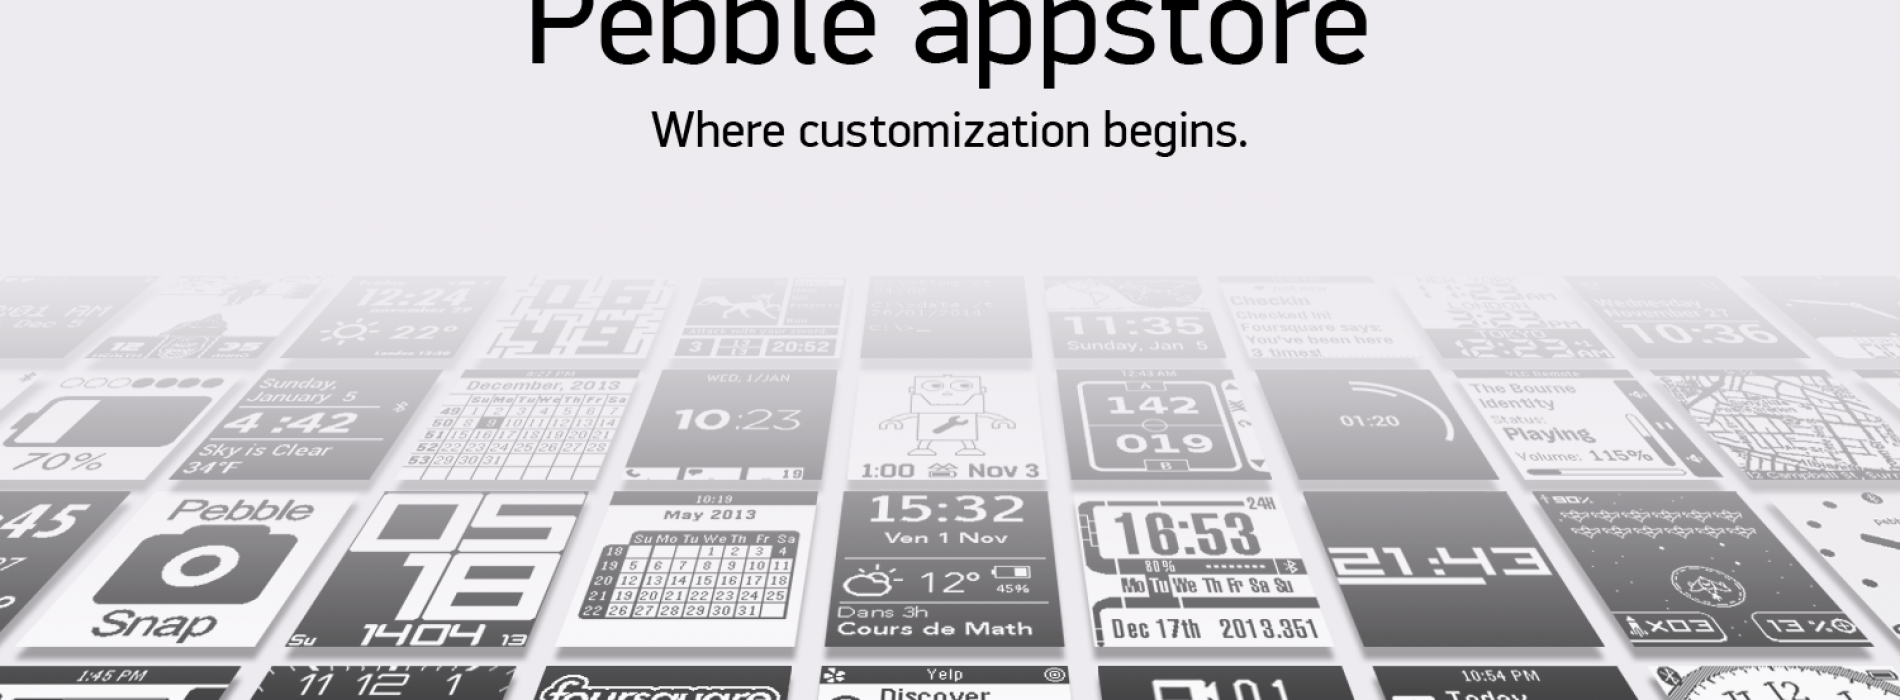 Pebble appstore beta now available for Android, finalized version coming soon